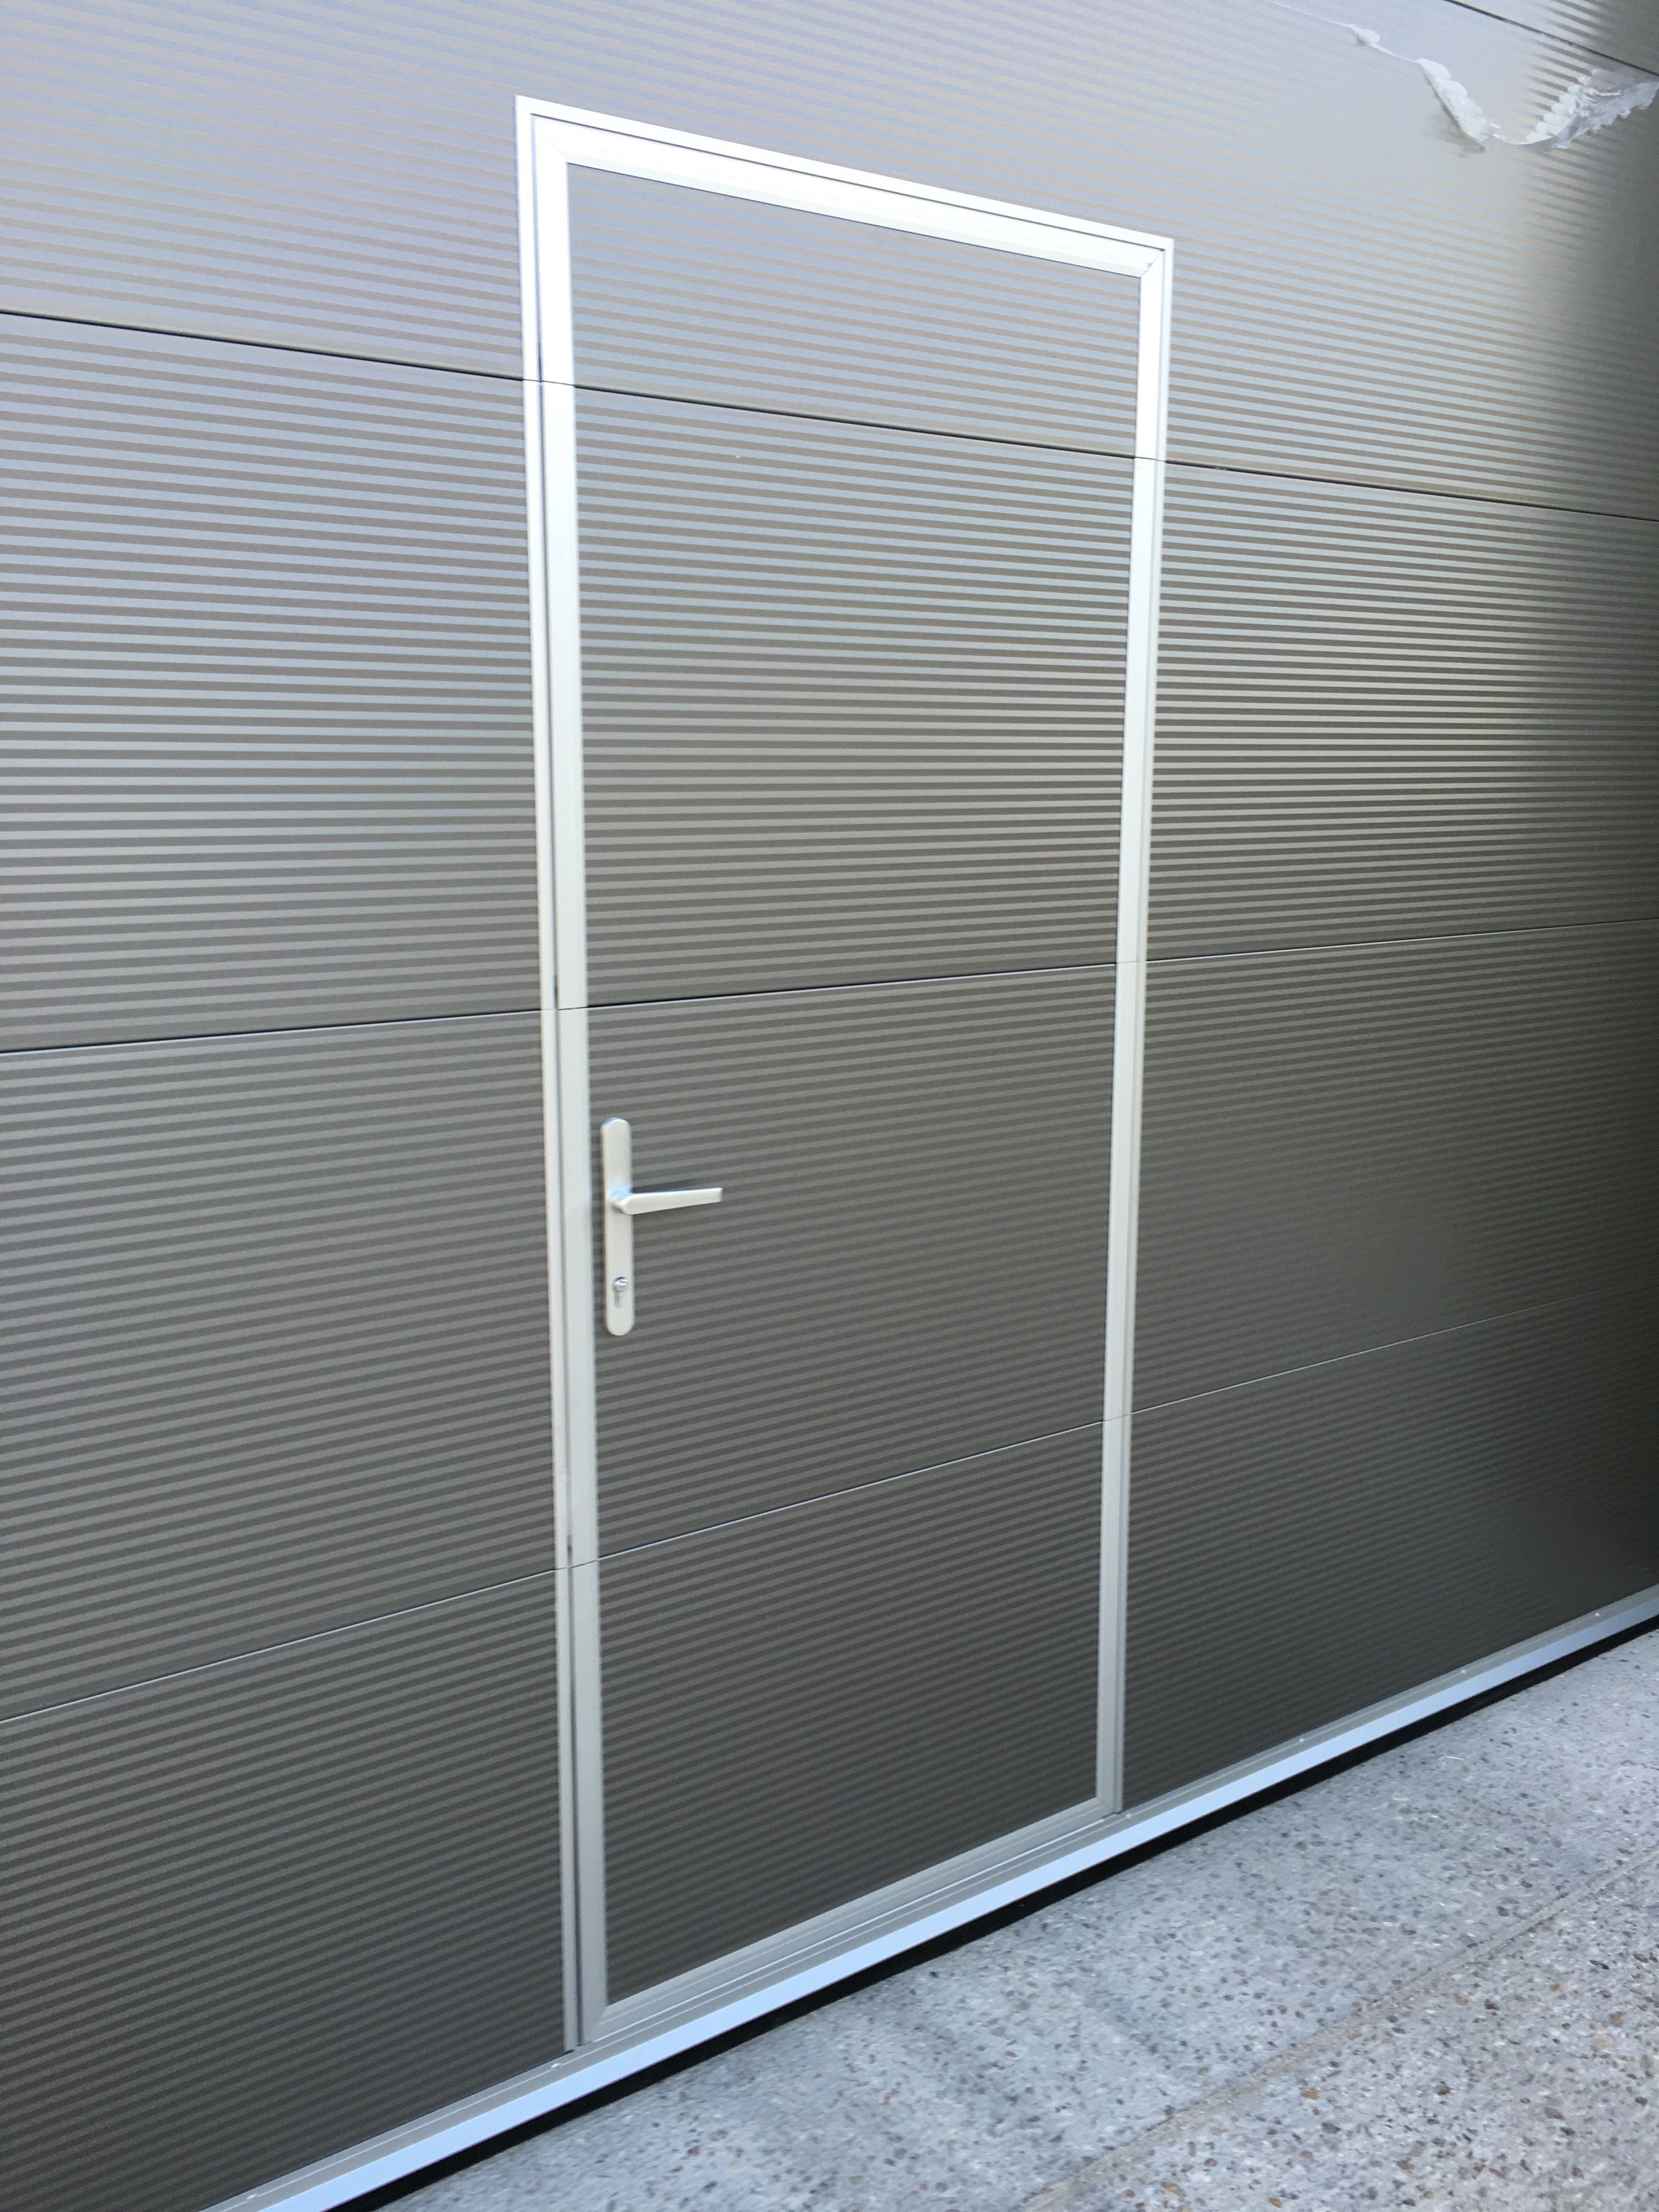 Wicket door incorporated in a sectional door & Wicket door incorporated in a sectional door | Sectional Doors ...